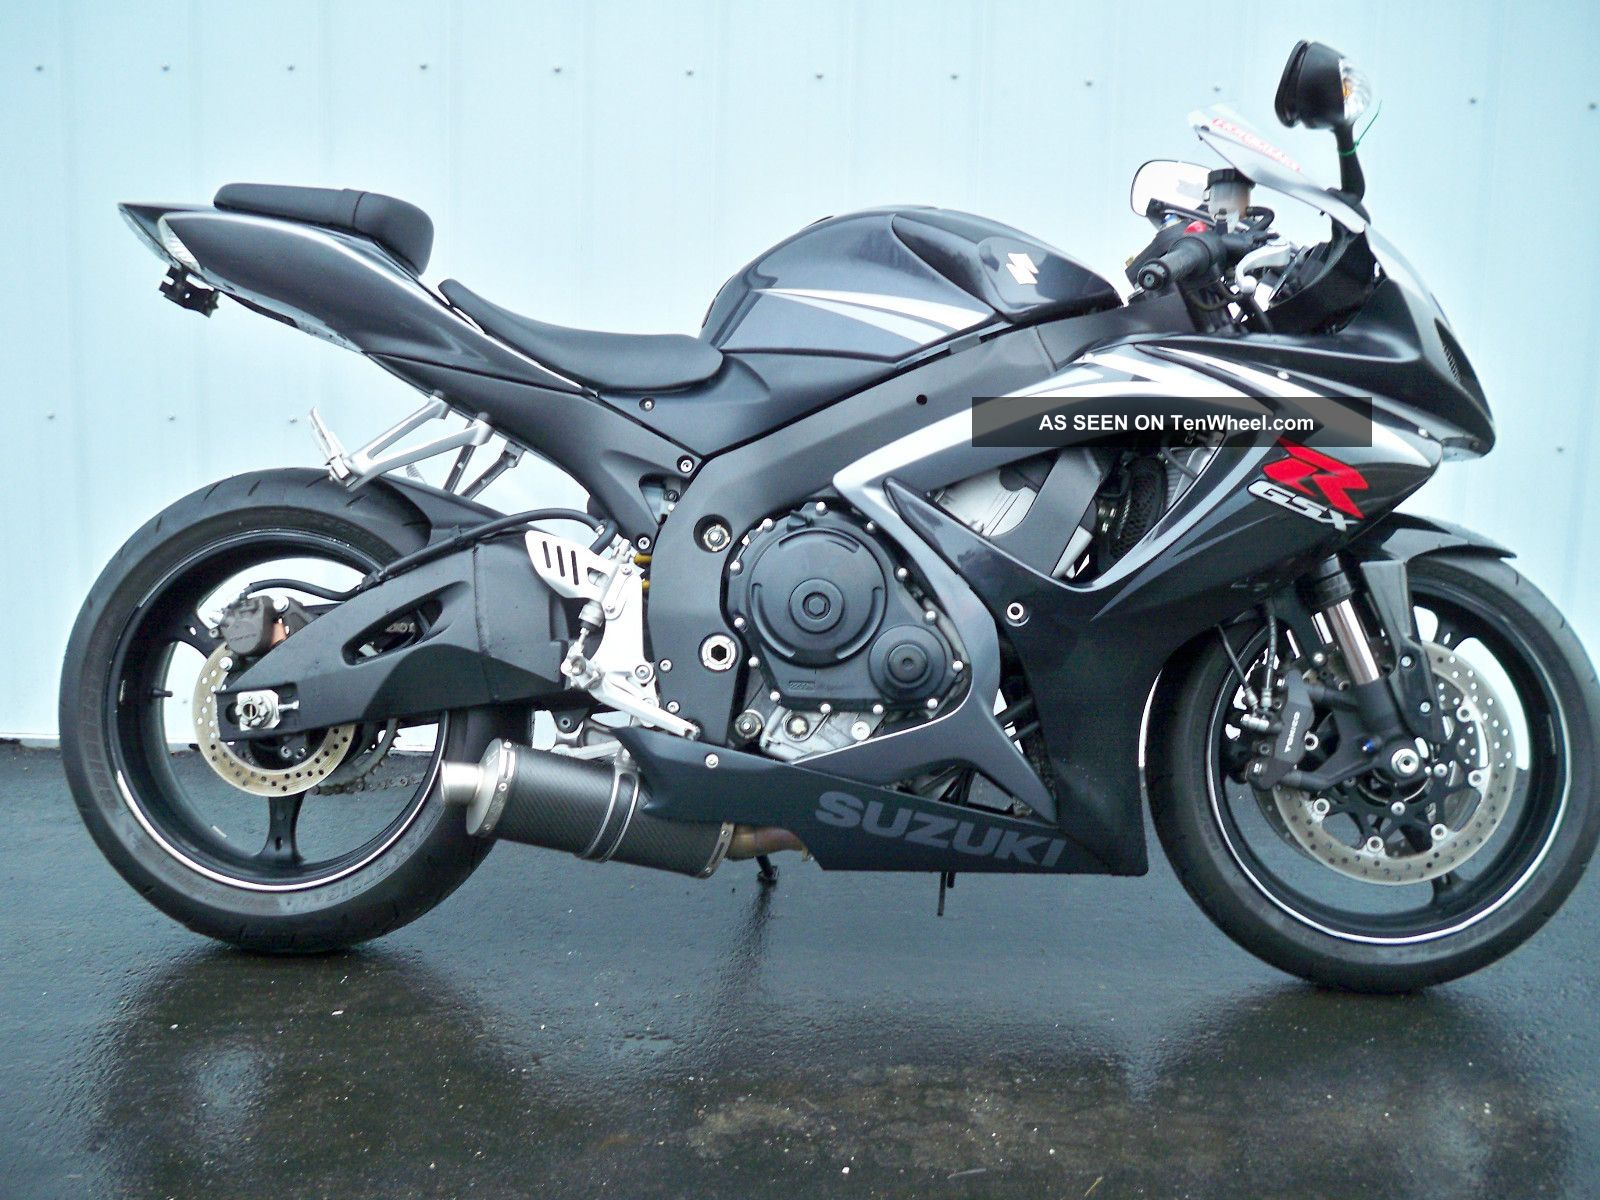 2007 suzuki gsxr 750 - photo #21